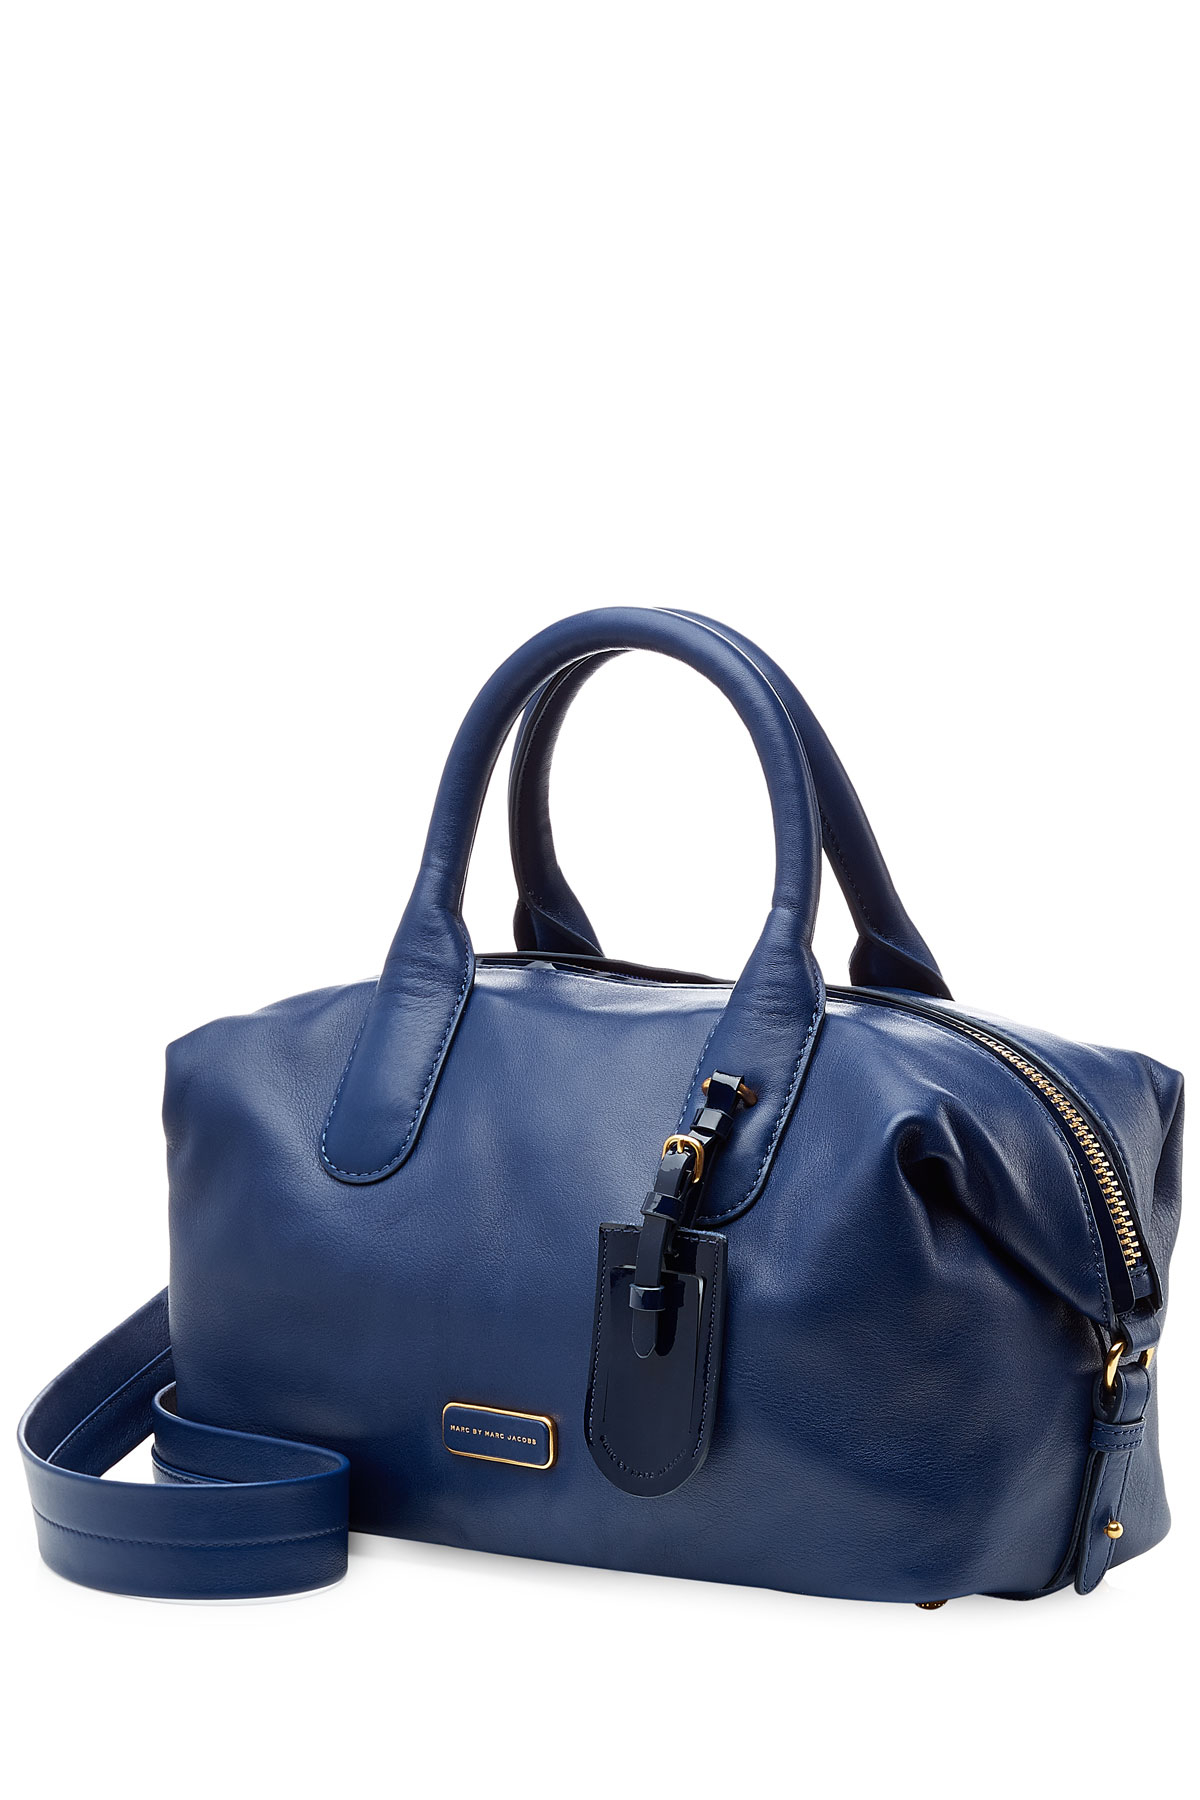 c1a1cdd0fc0f Gallery. Previously sold at  STYLEBOP.com · Women s Bowling Bags Women s Marc  Jacobs Legend